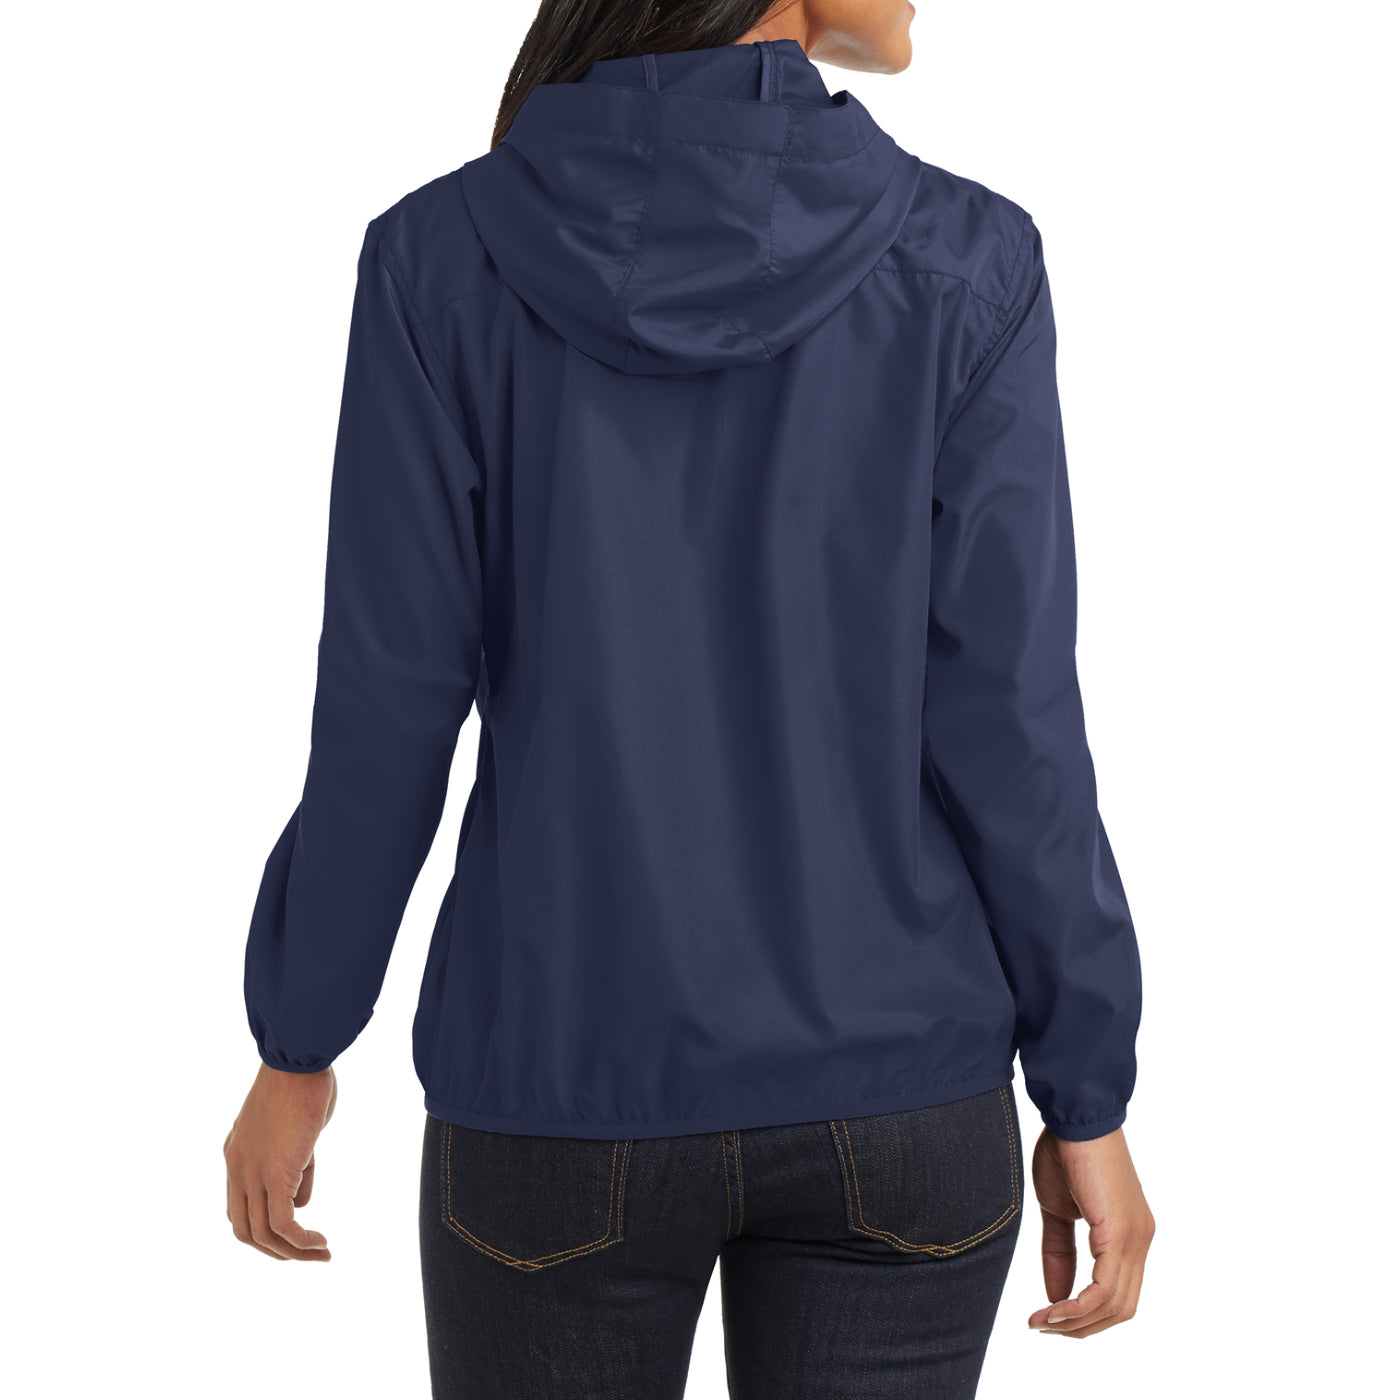 Women's Hooded Essential Jacket - True Navy - Back